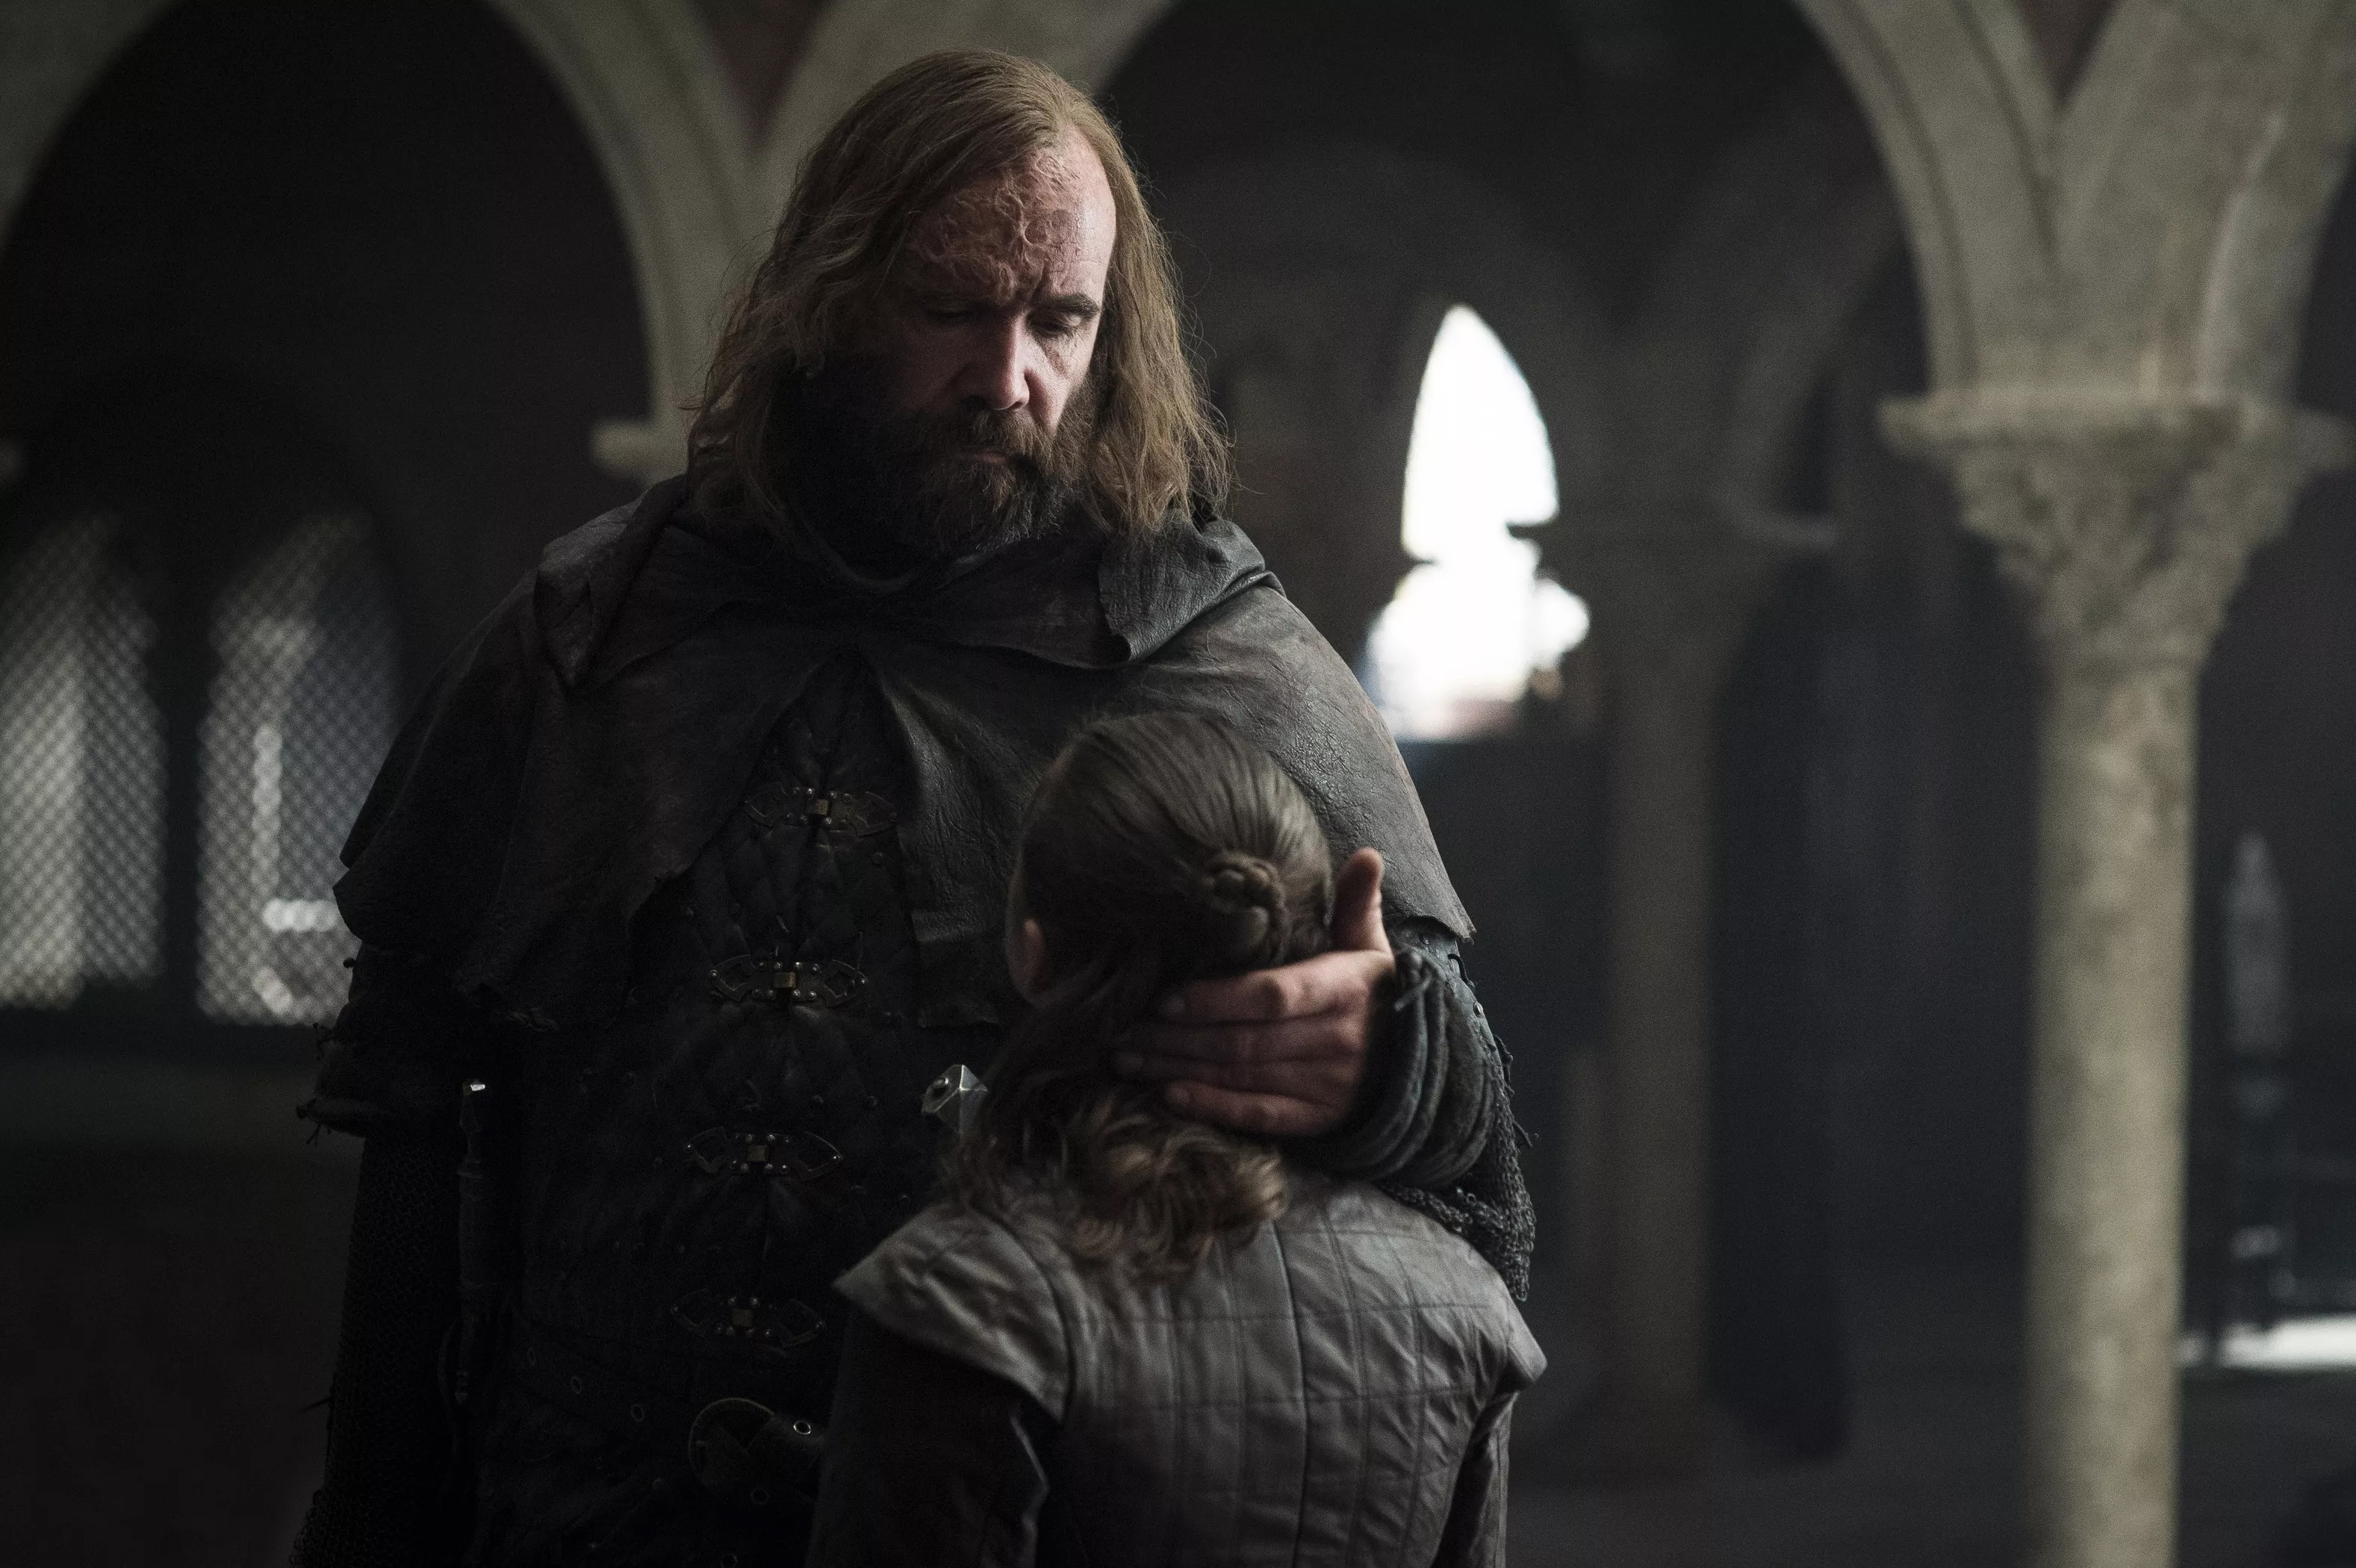 8x05 - The Bells - The Hound and Arya